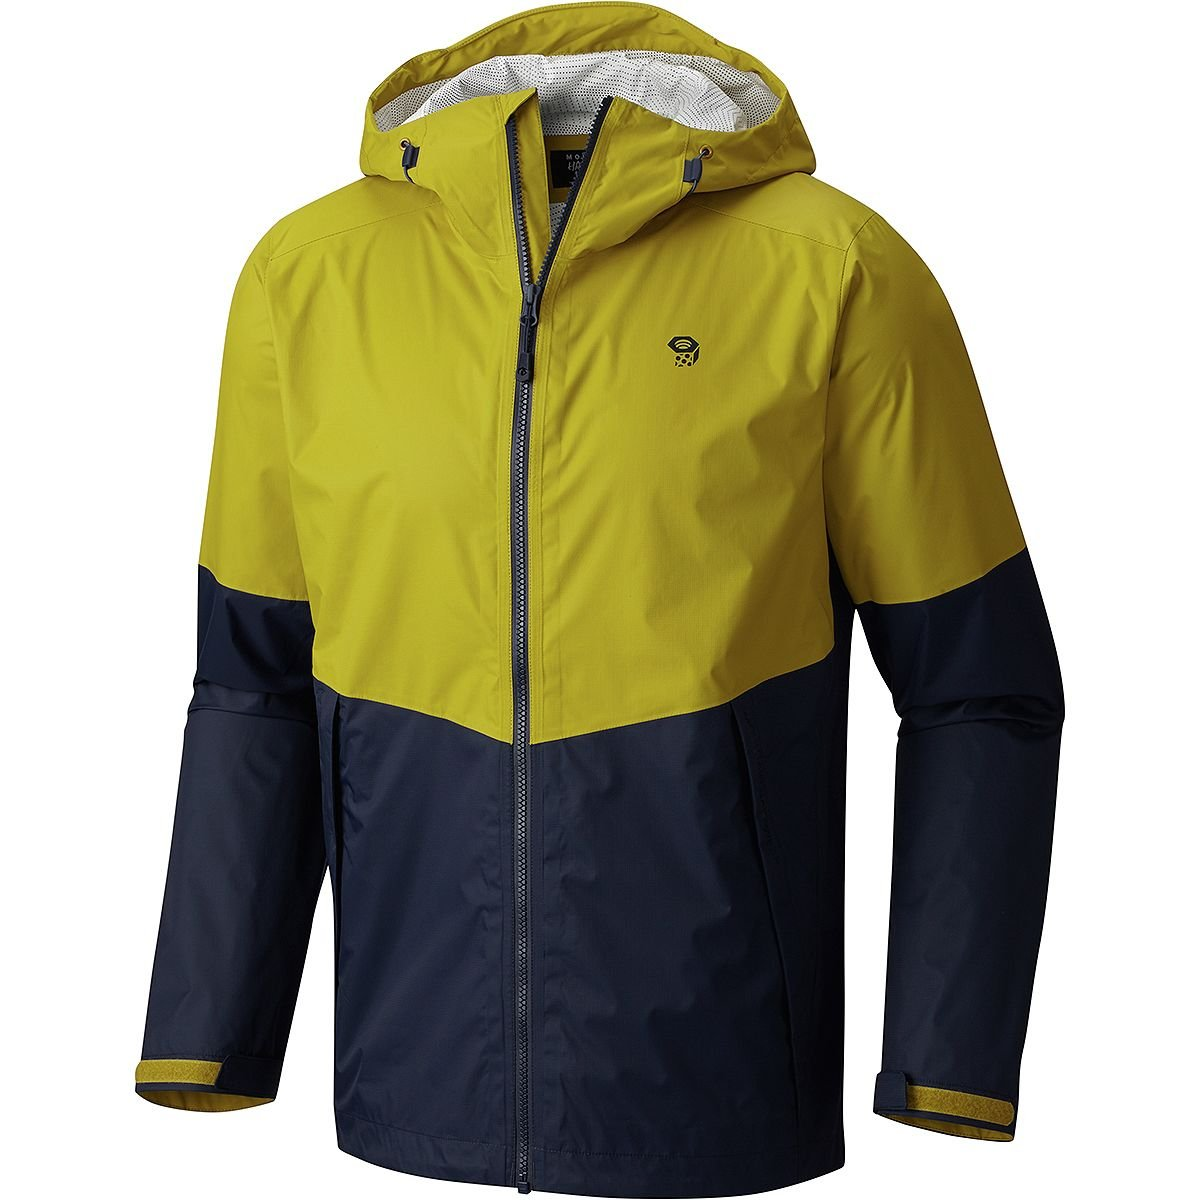 マウンテンハードウェア指数Jacket – Men 's B079H23PM9 Large|Dark Citron Dark Citron Large